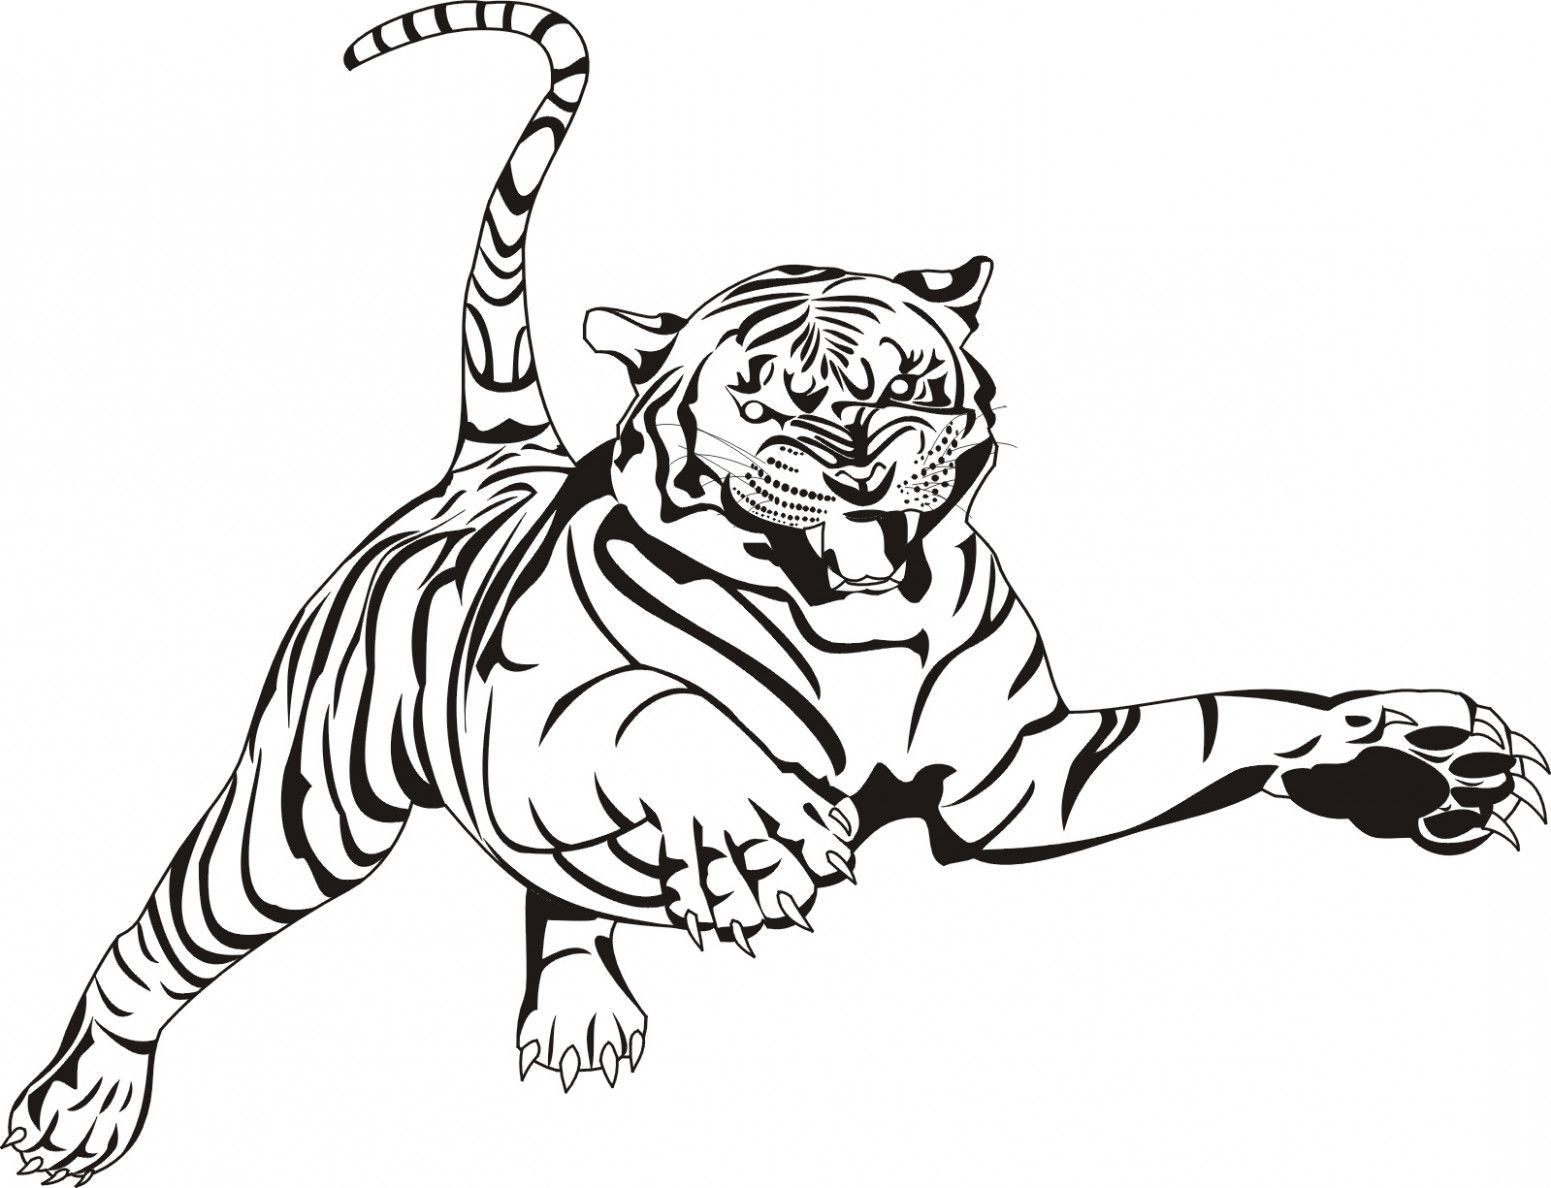 21 Things You Should Know About Tiger Girl Coloring Pages Coloring Animal Coloring Pages Lion Coloring Pages Coloring Pages